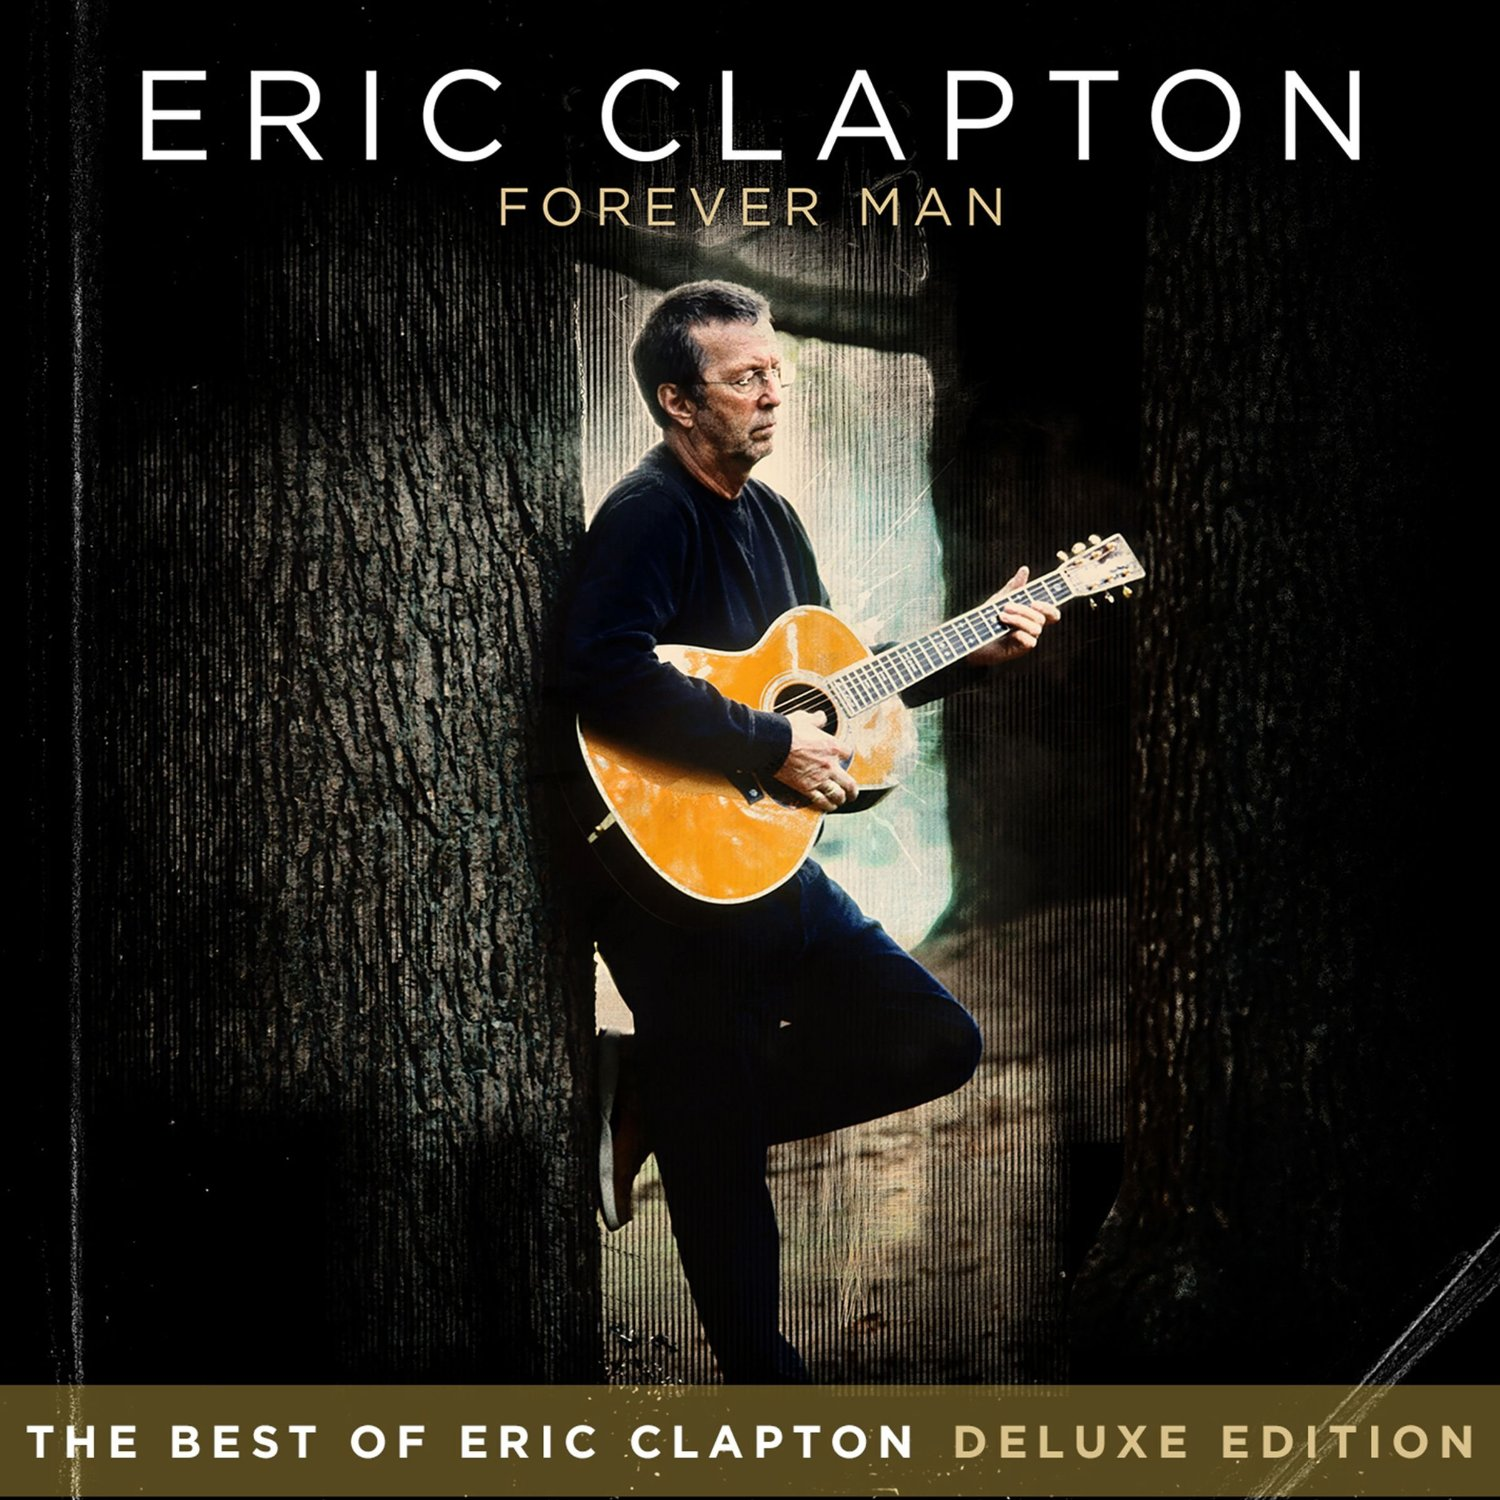 The best of Eric Clapton - Forever man (Deluxe edition)